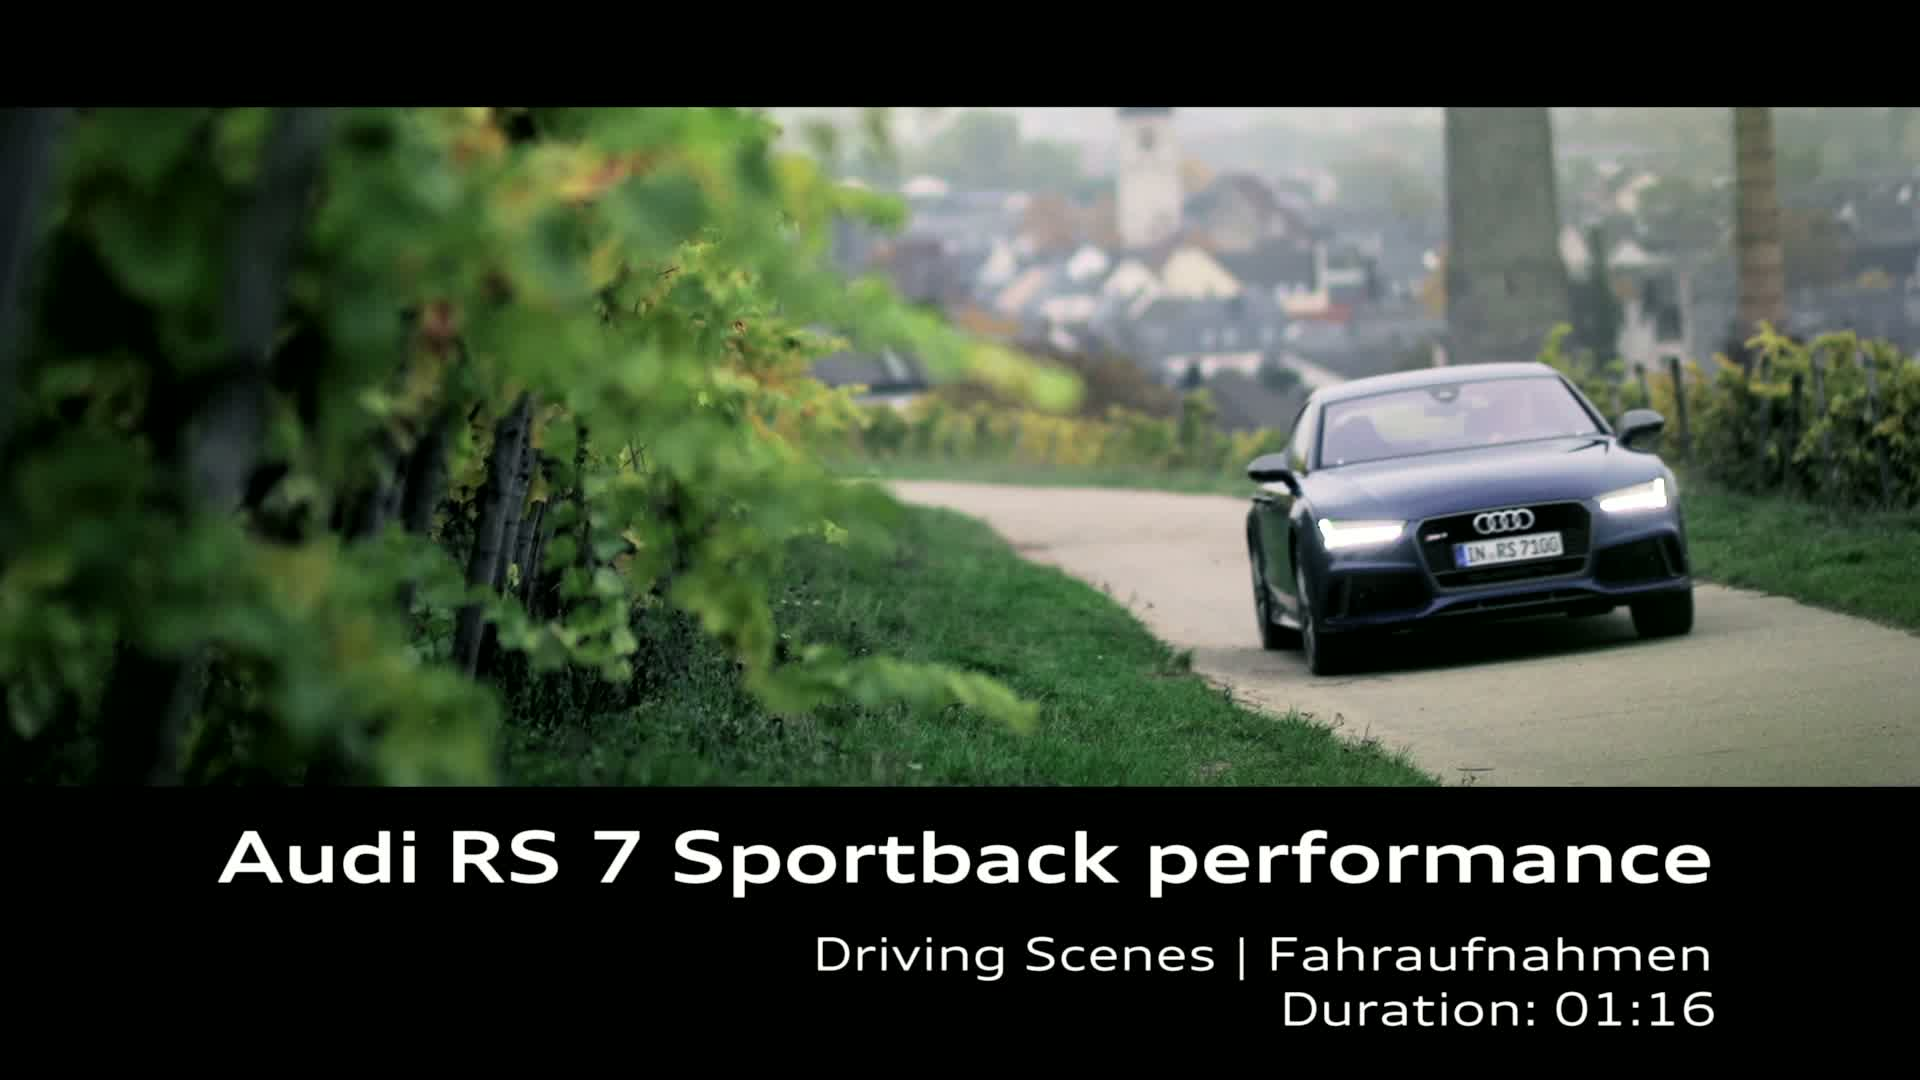 Audi RS 7 Sportback performance - Footage